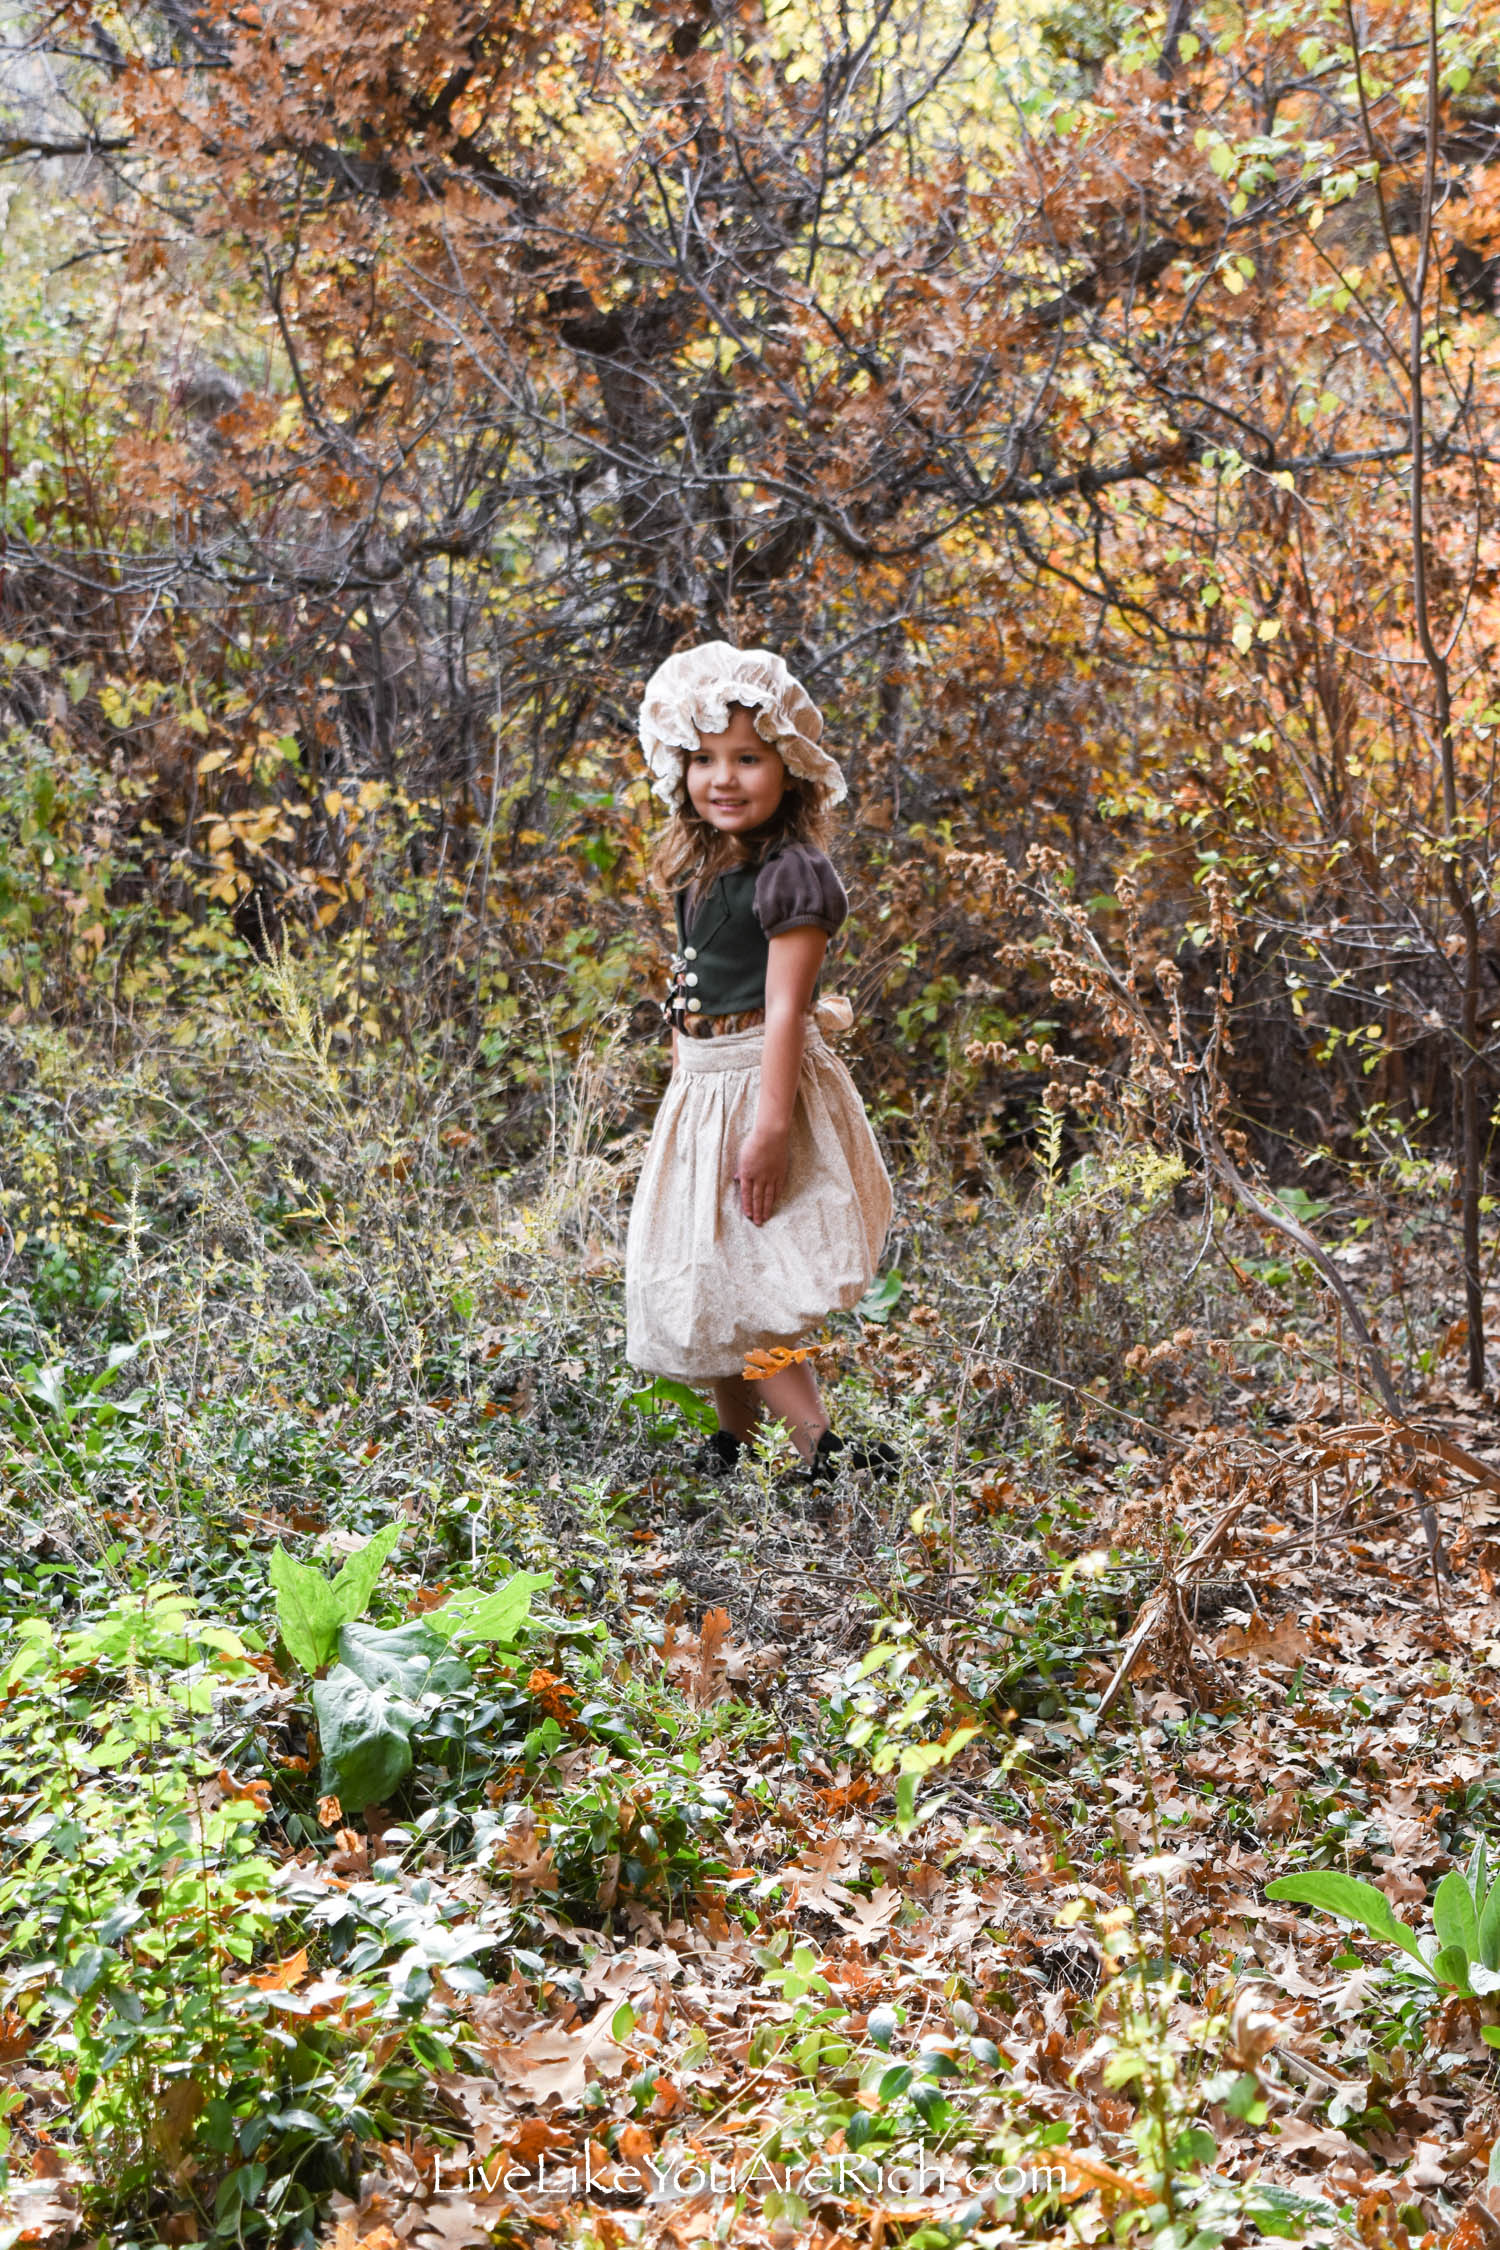 Gretel in forest